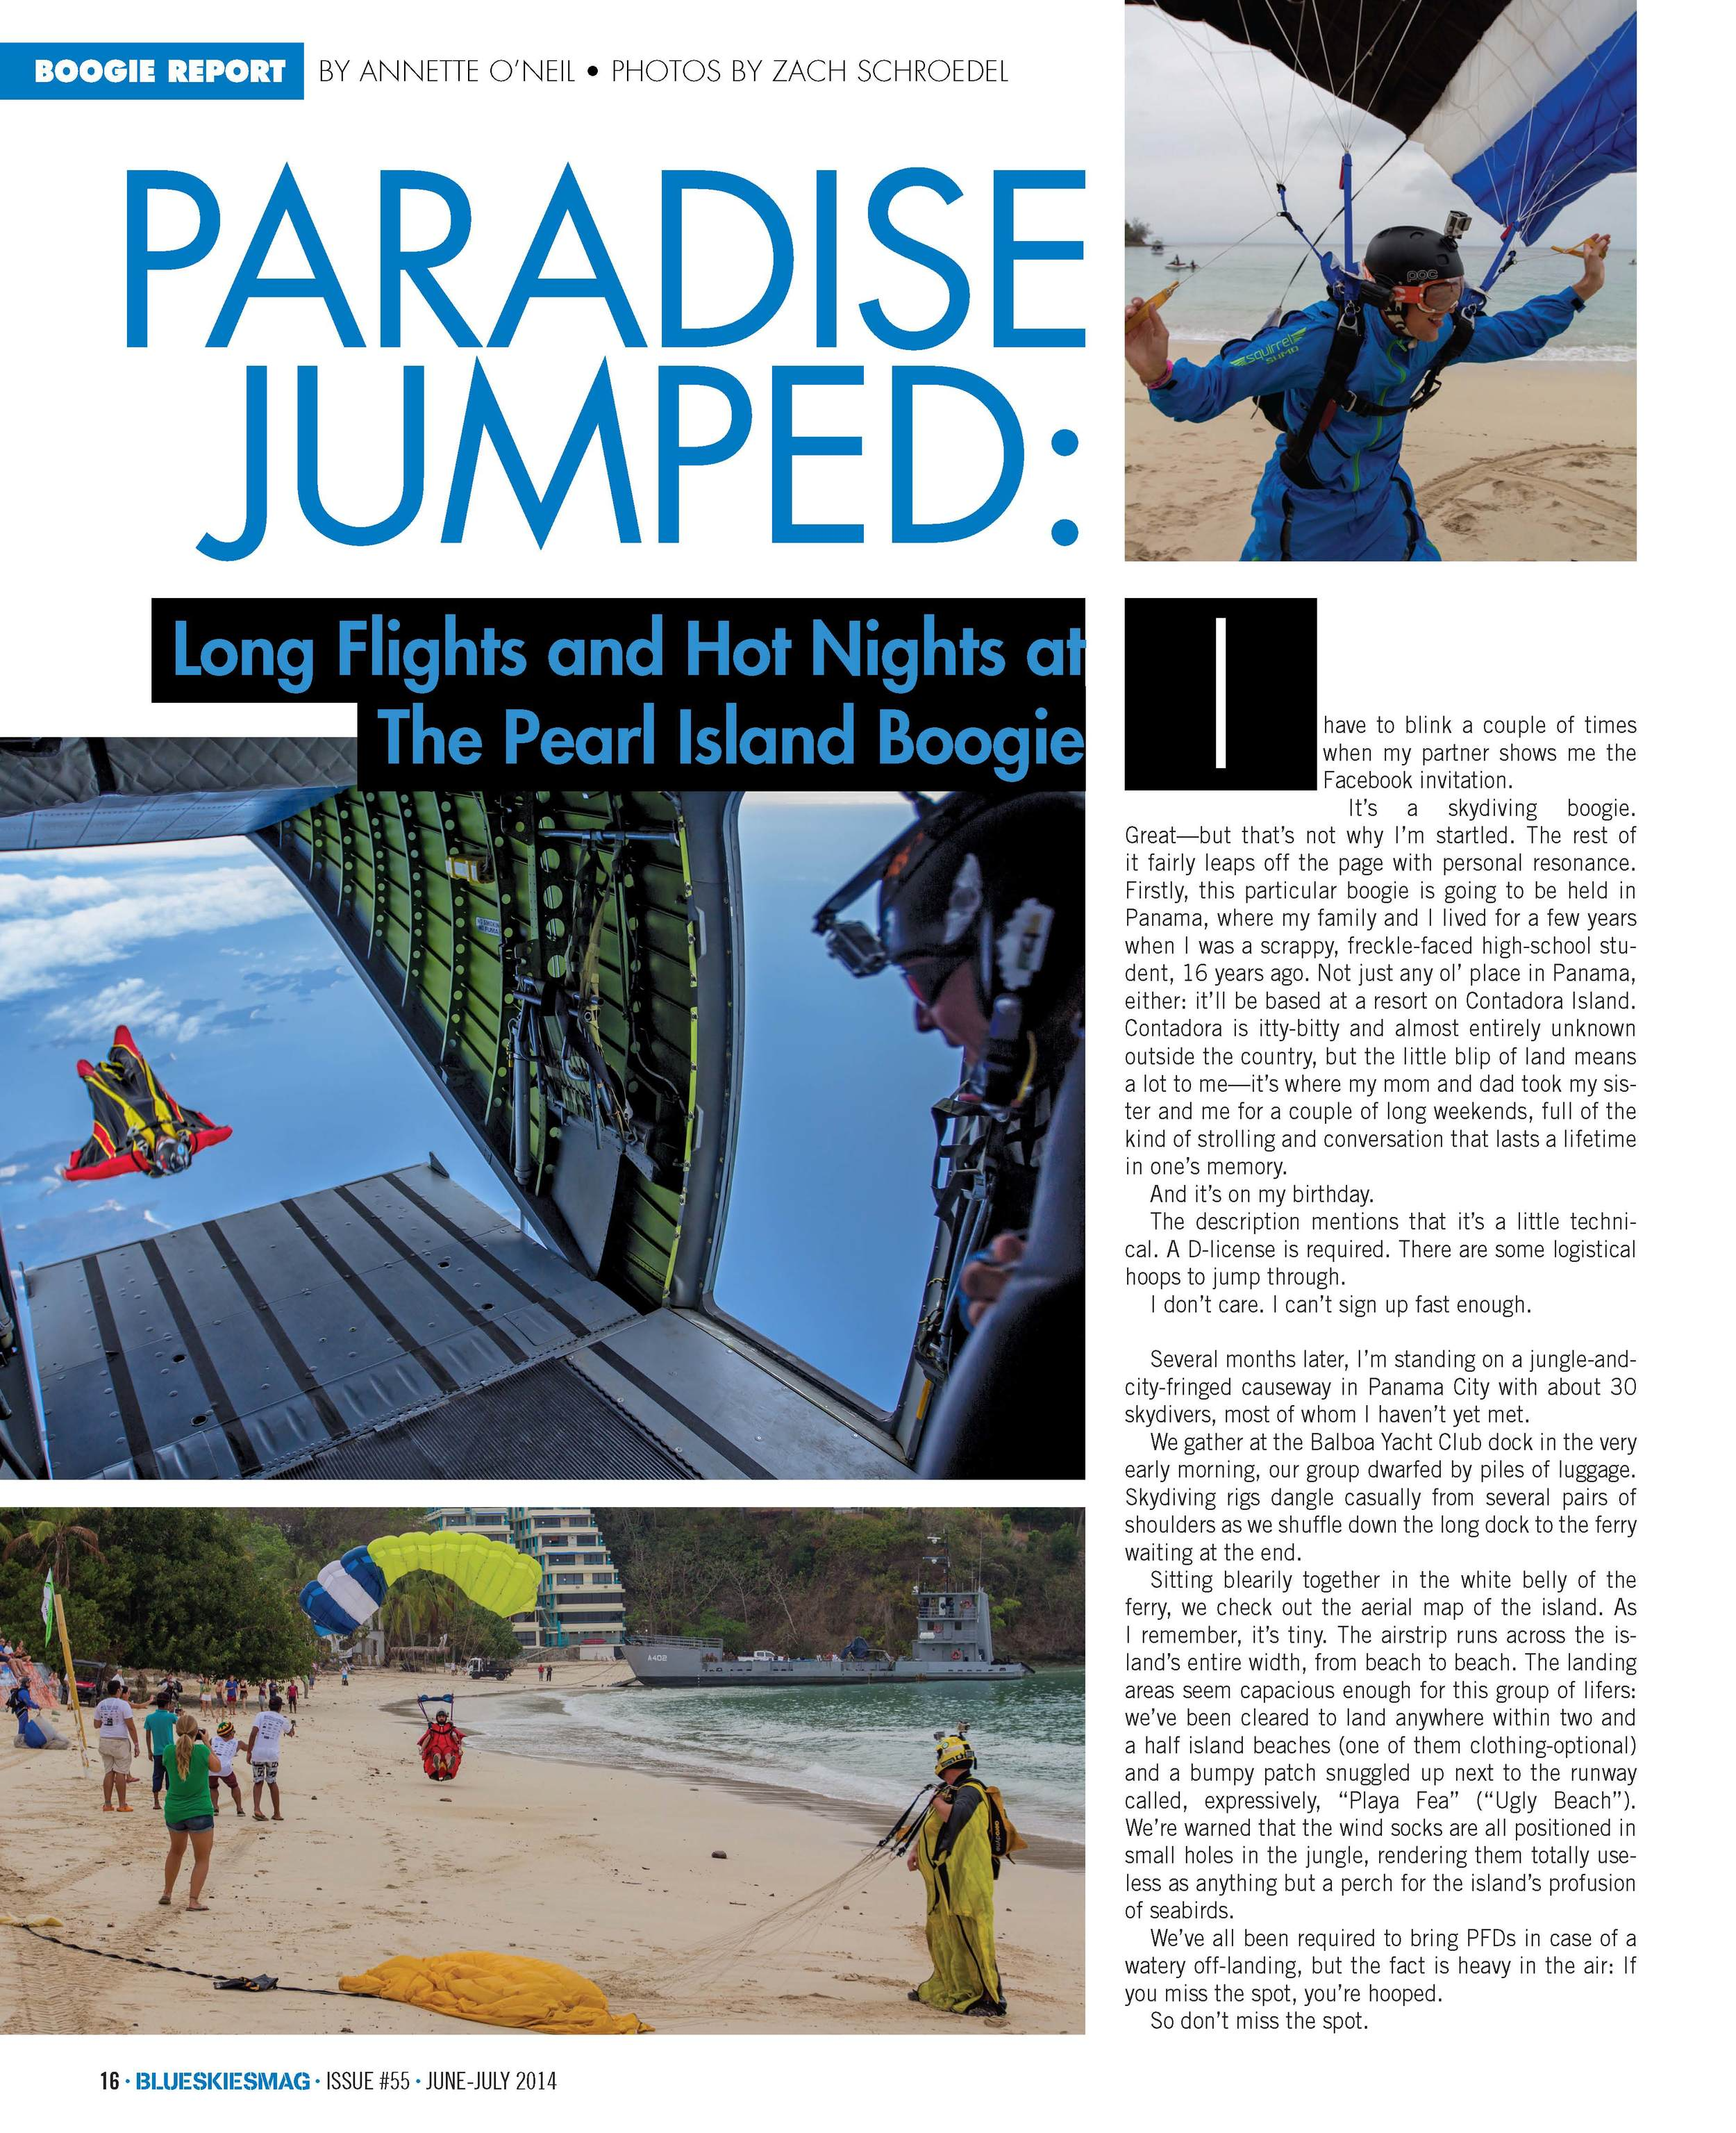 Paradise Jumped: Long Flights and Hot Nights at the Pearl Island Boogie